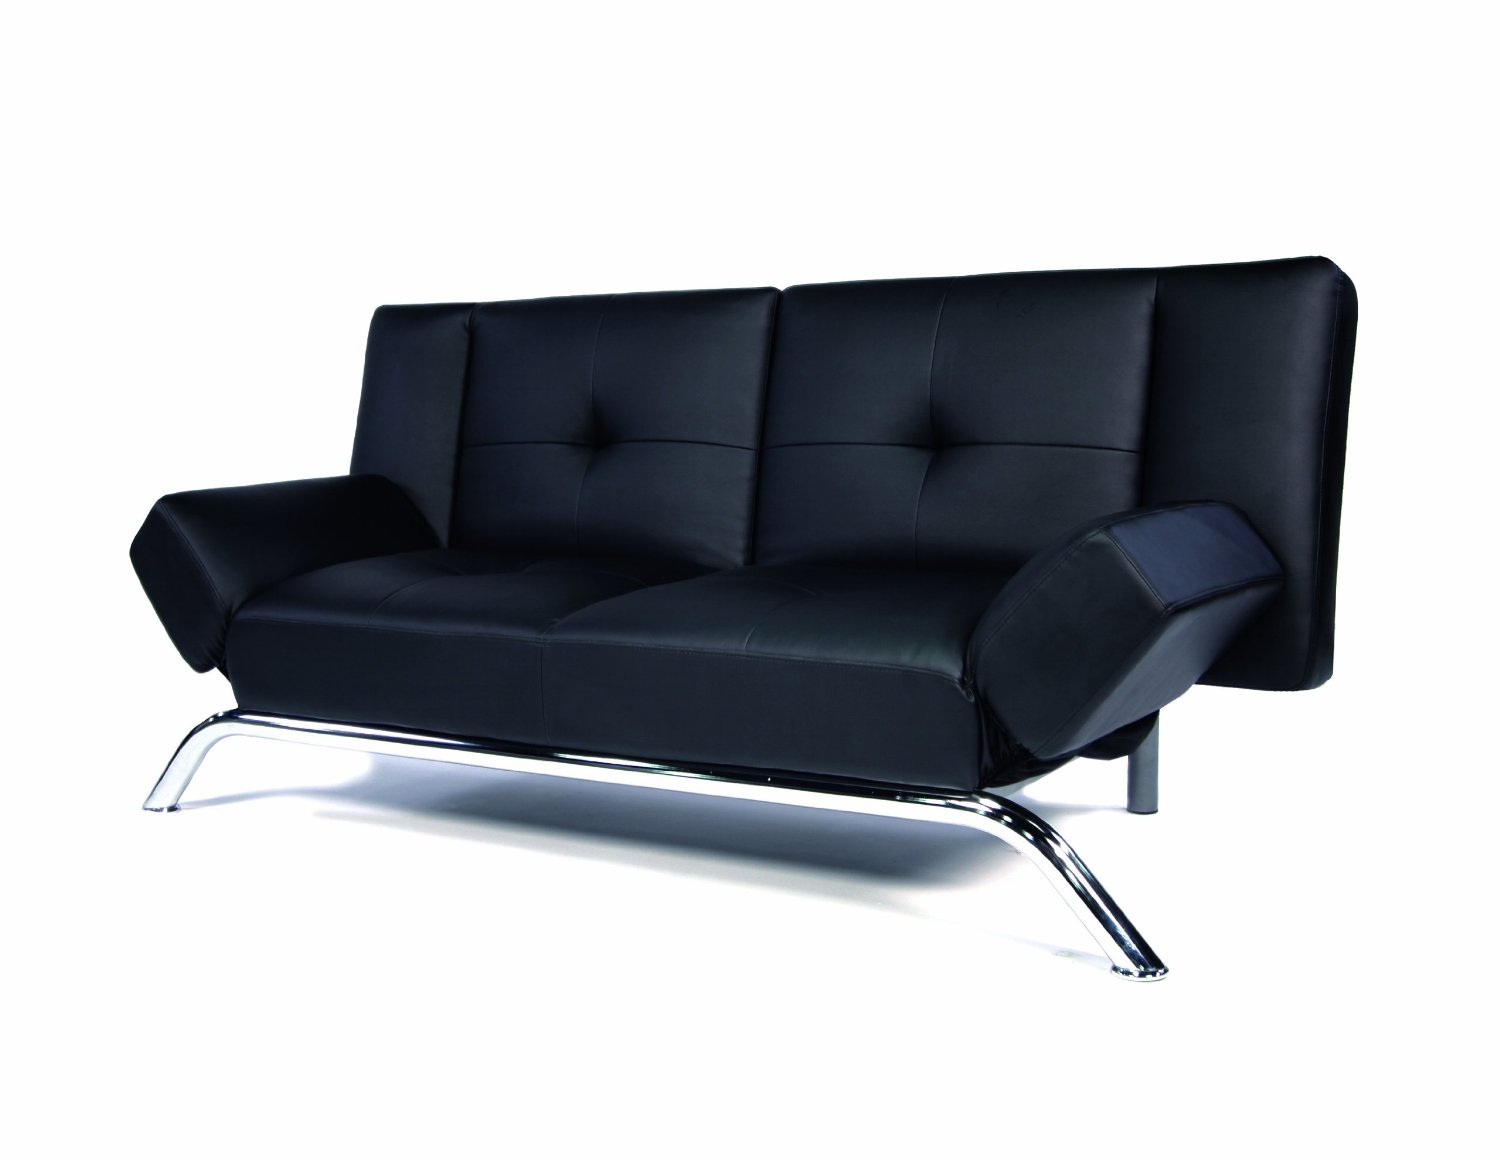 Ordinaire Futon. Global Furniture